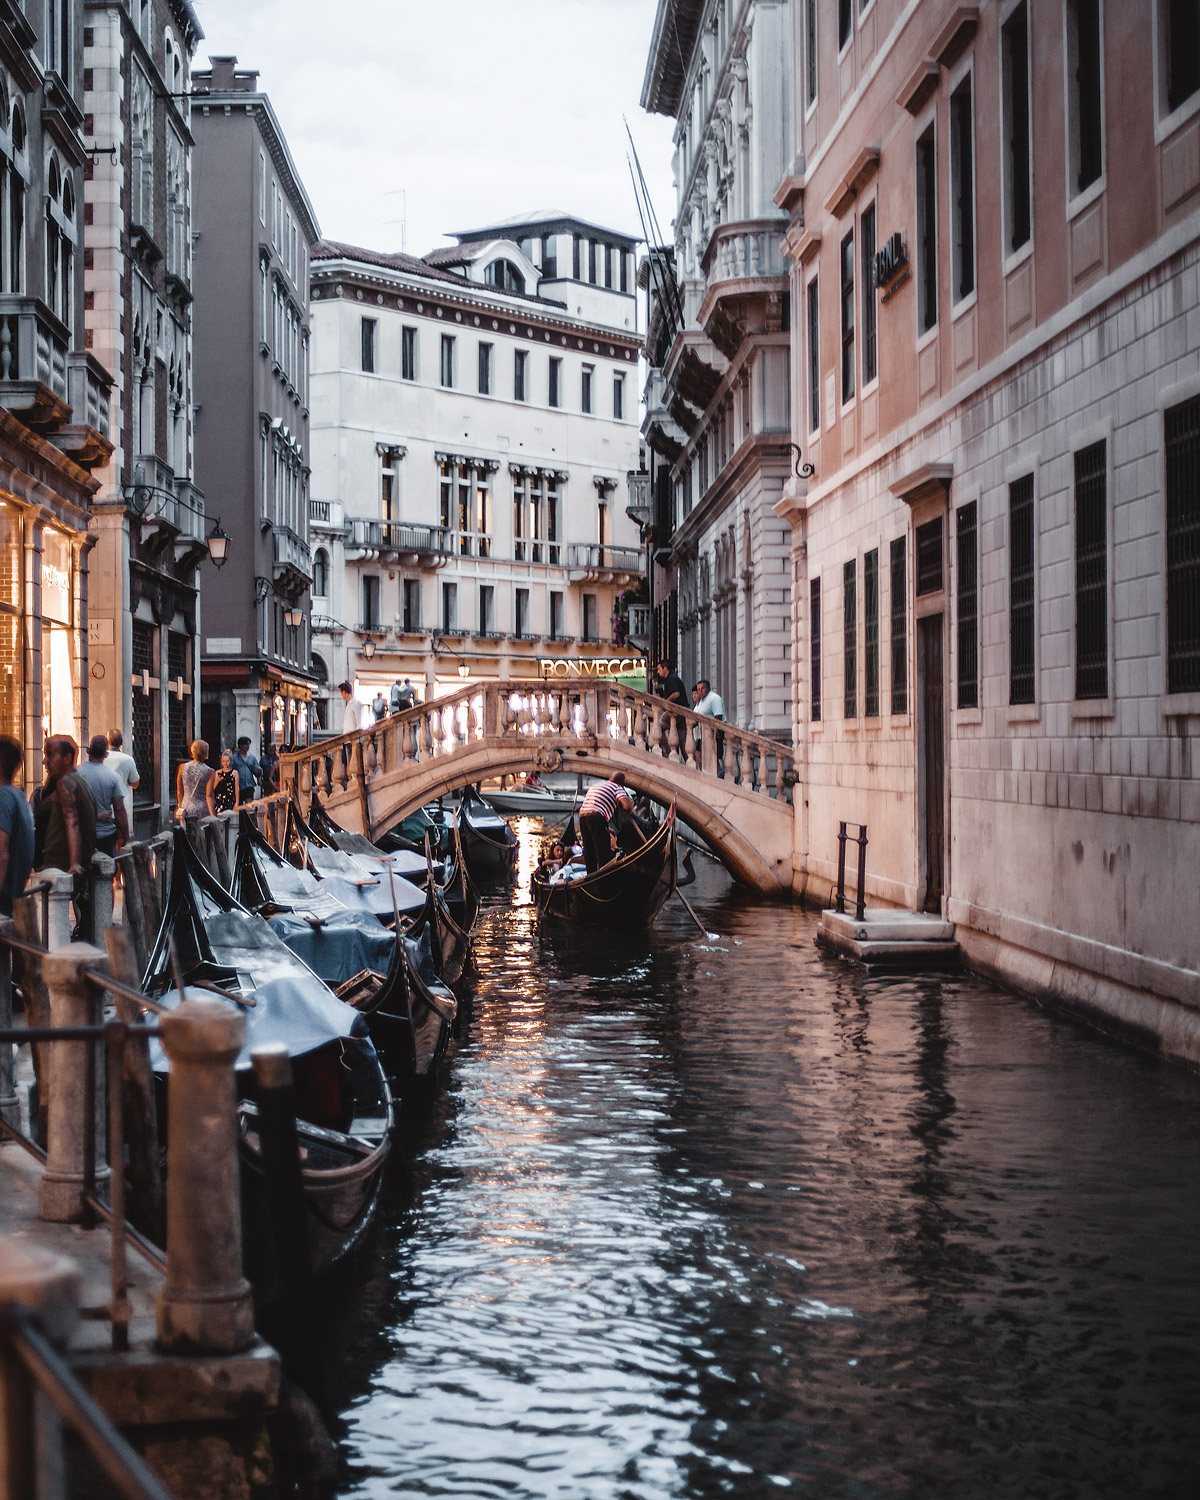 View of a canal evening in Venice